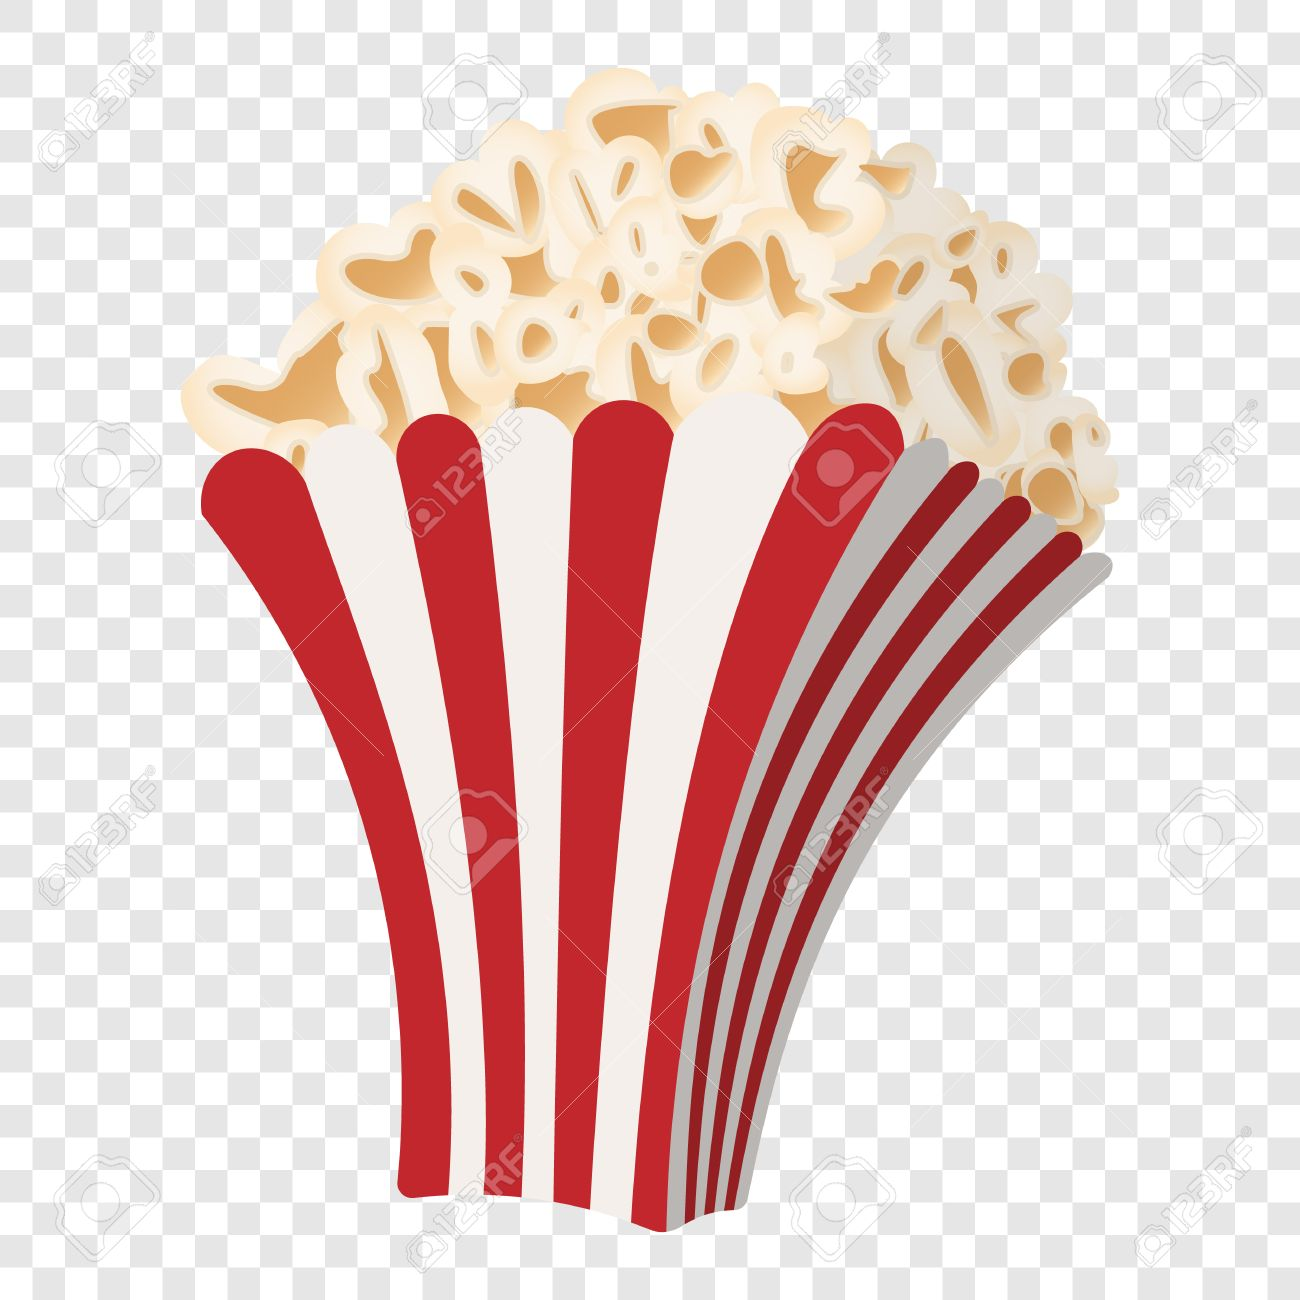 Popcorn No Background - Popcorn Icon In Cartoon Style On Transparent Background Royalty ...